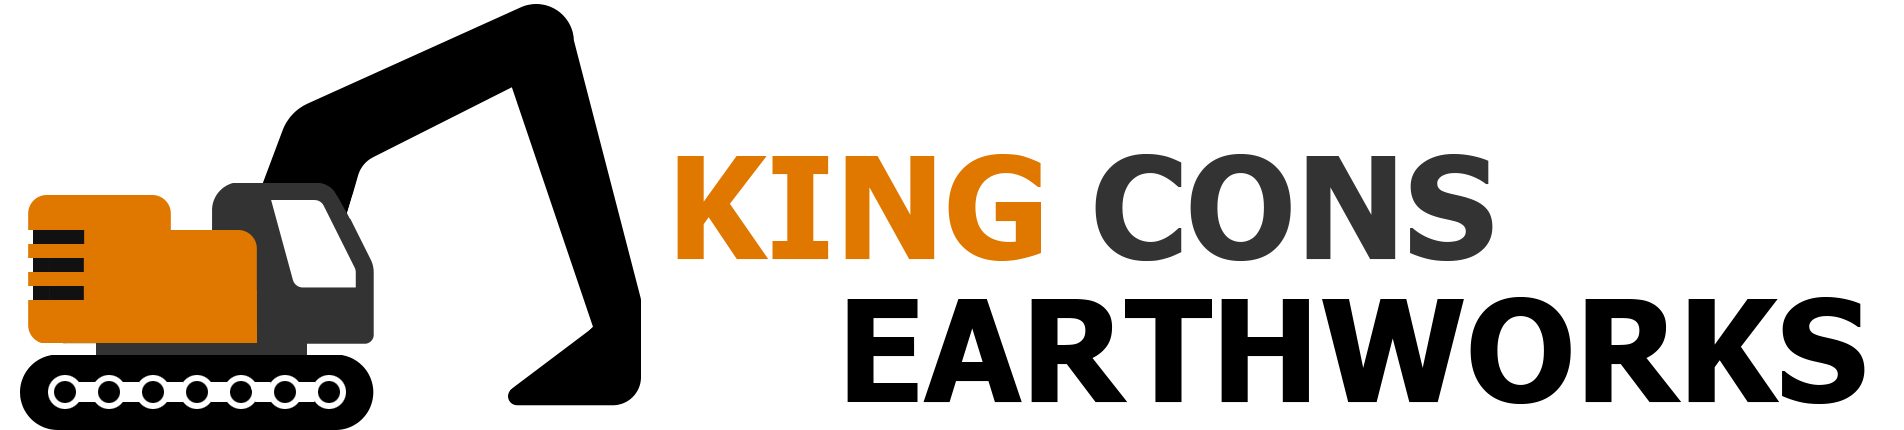 King Cons Earthworks